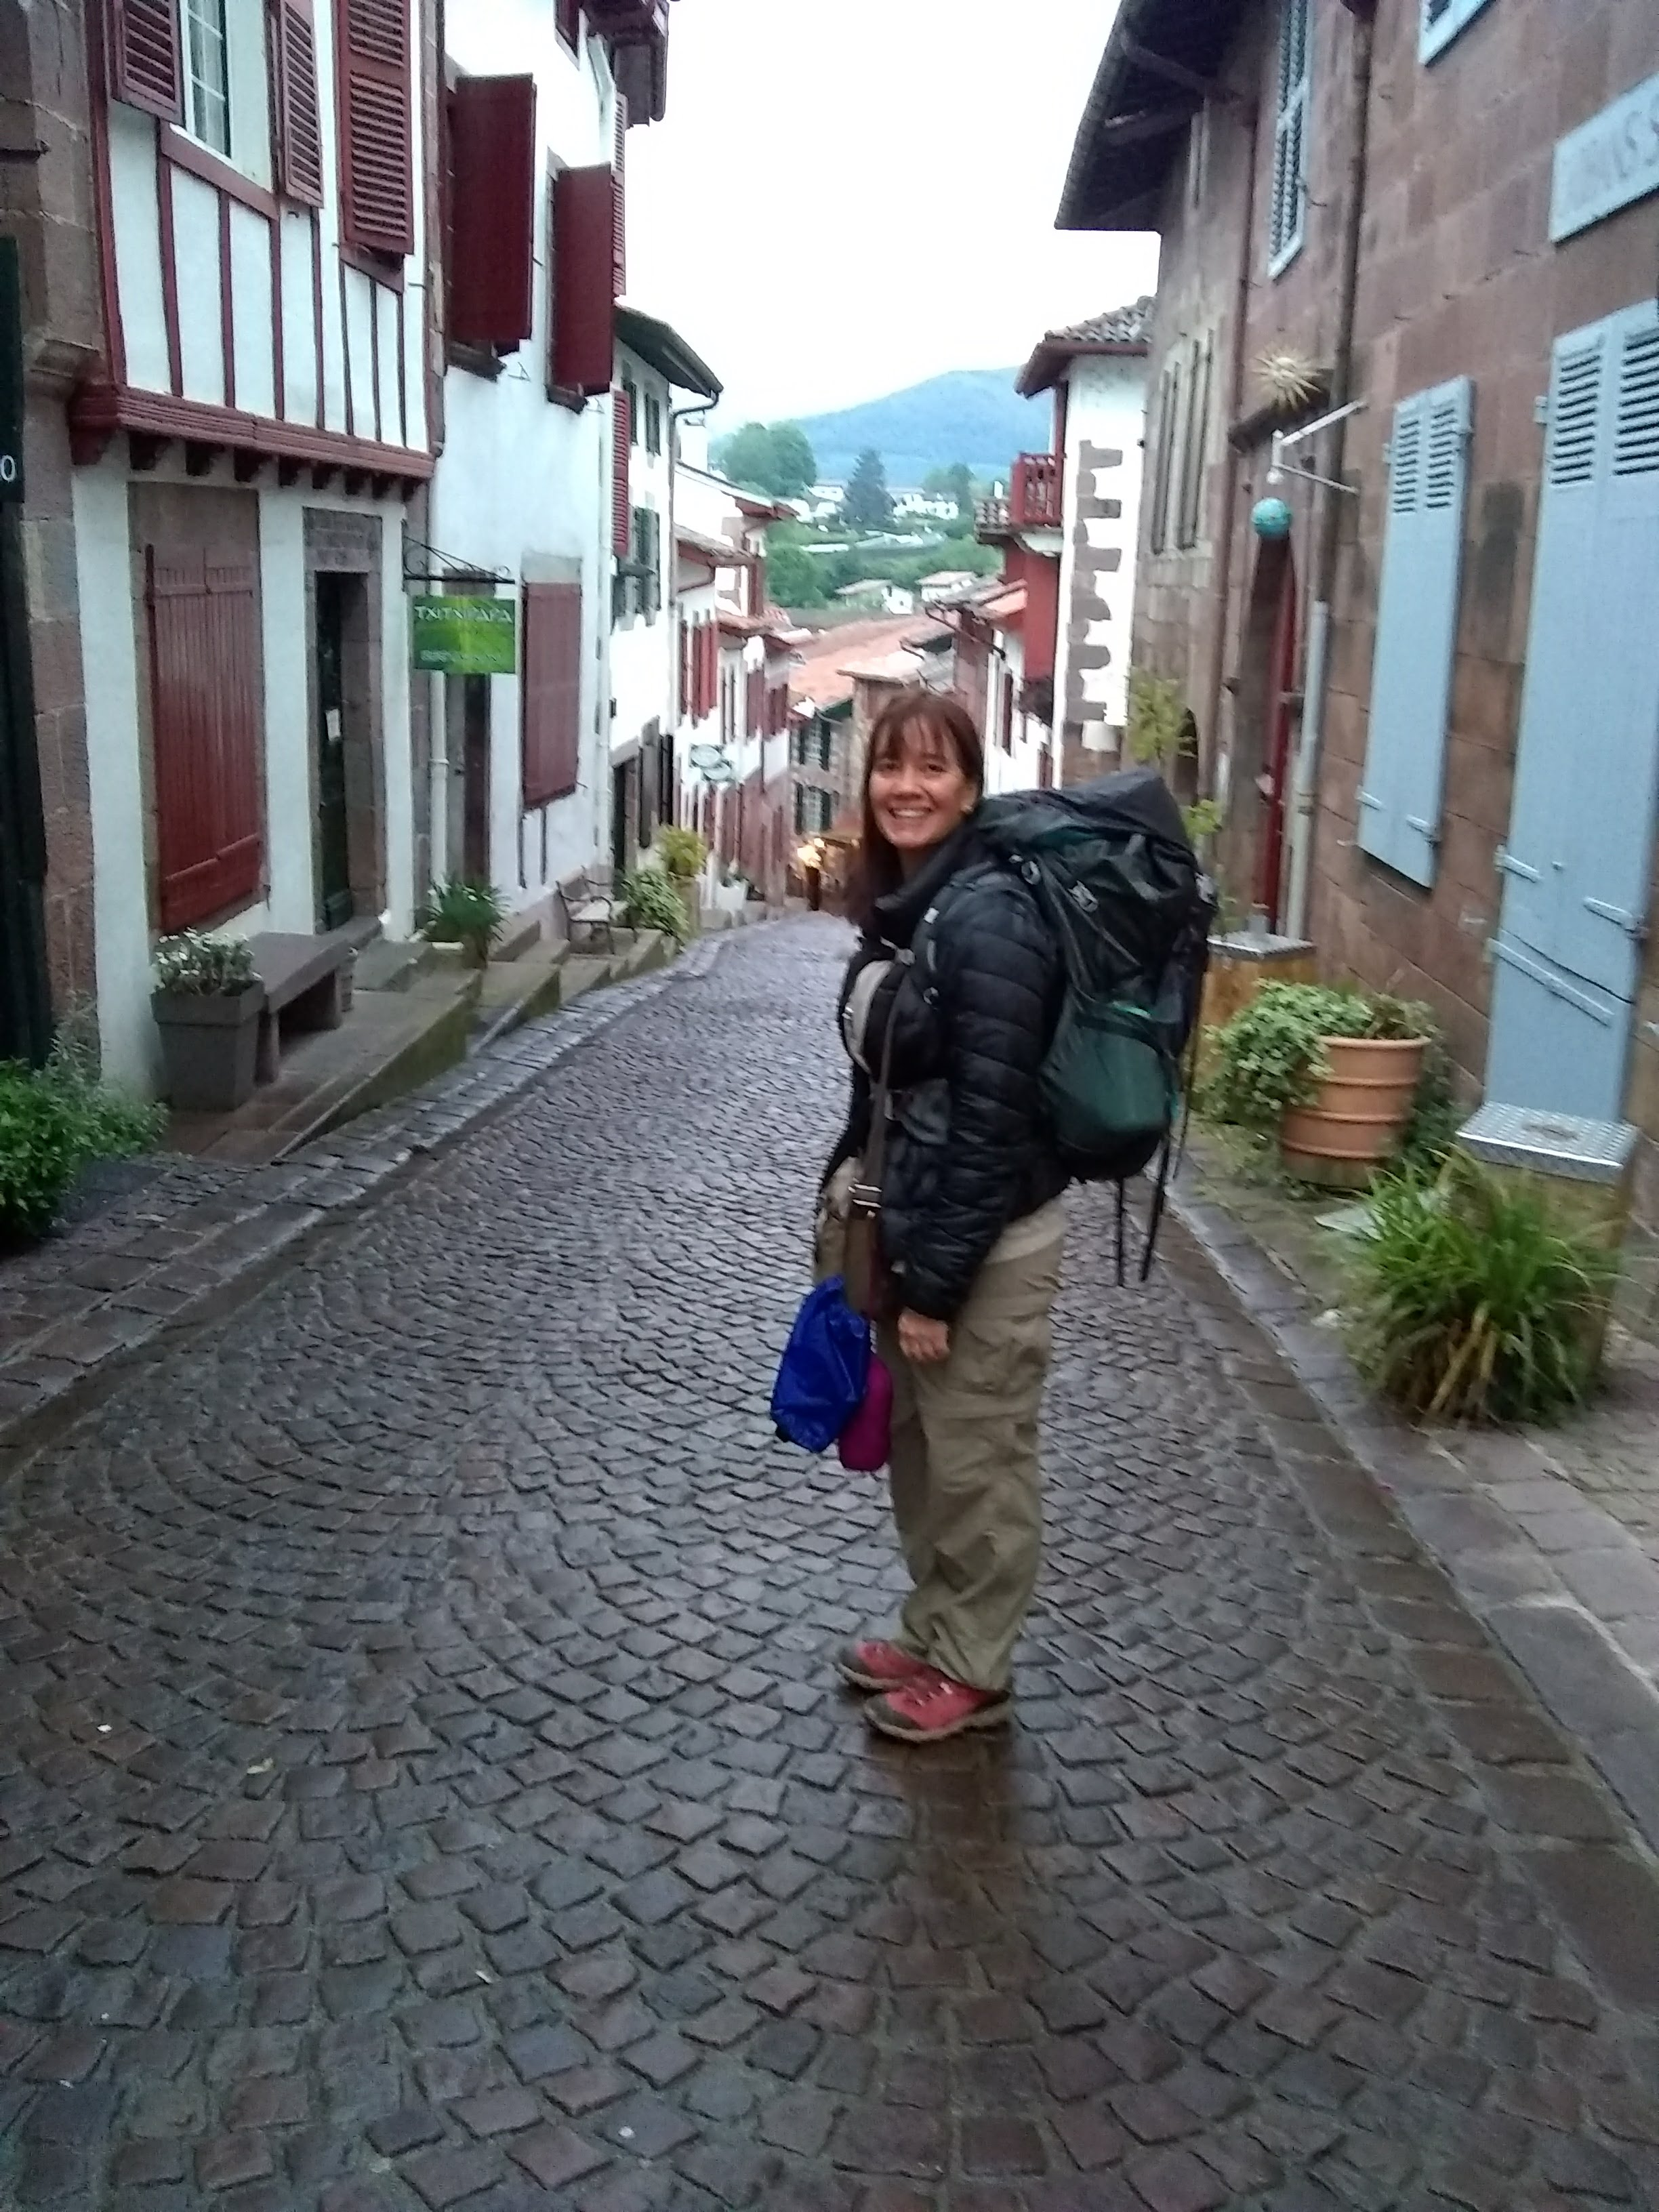 Camino Santiago Packing List Camino De Santiago Packing List Life Kinetic Travel Research